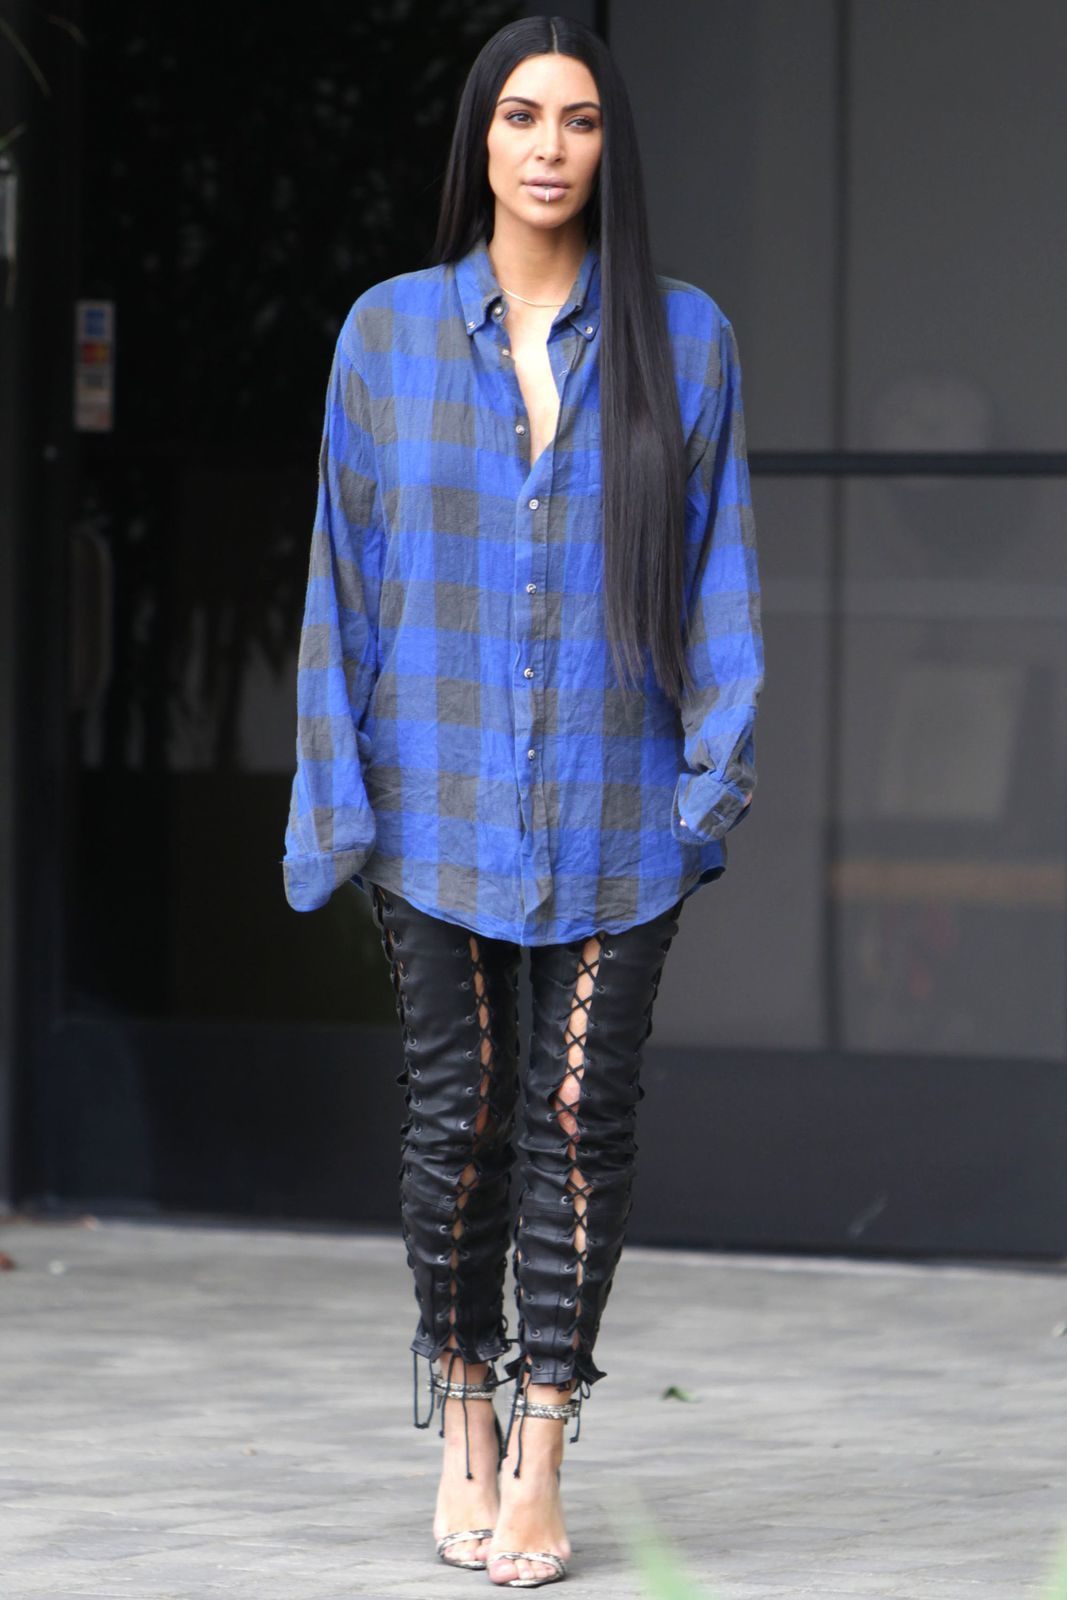 Kardashian Style: HOT OR NOT?